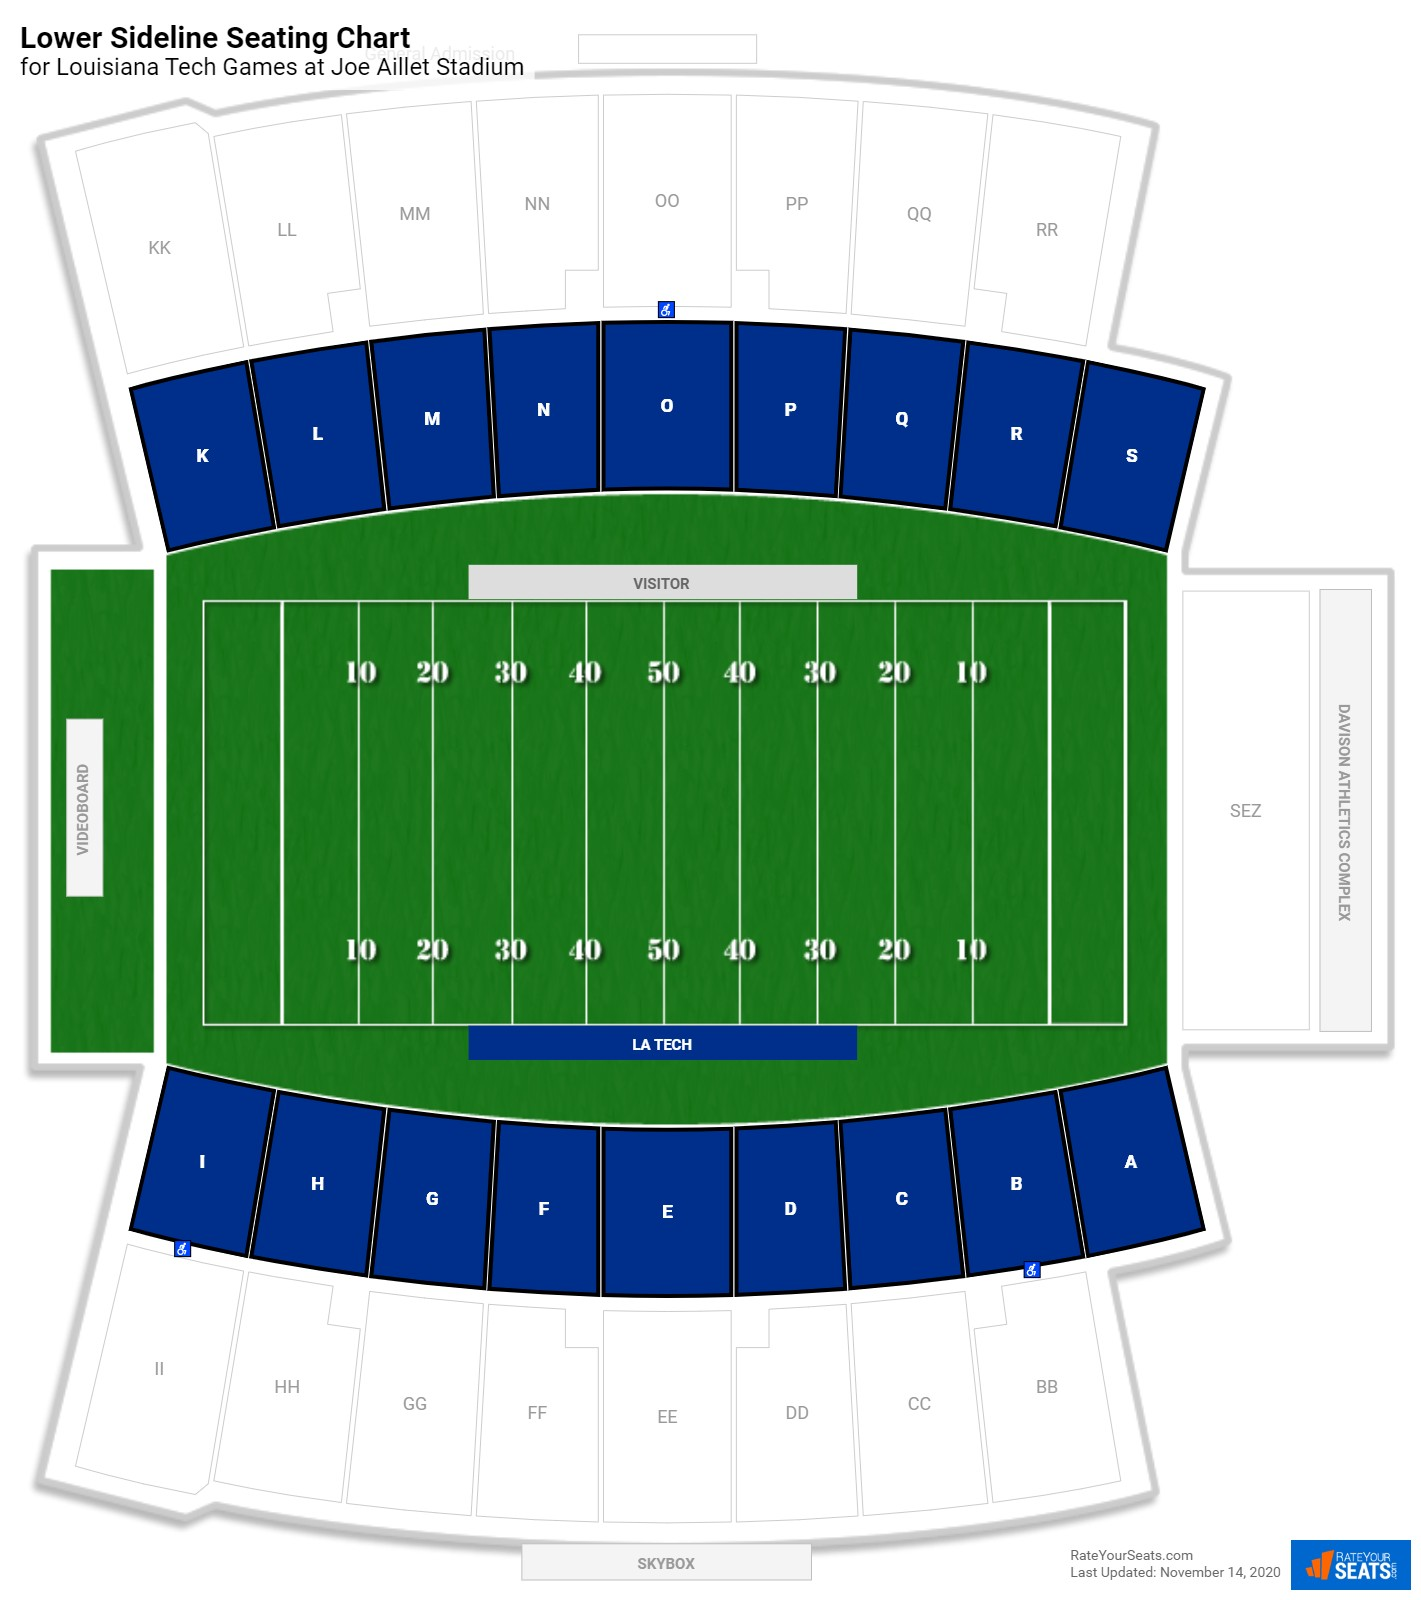 Joe Aillet Stadium Lower Sideline seating chart